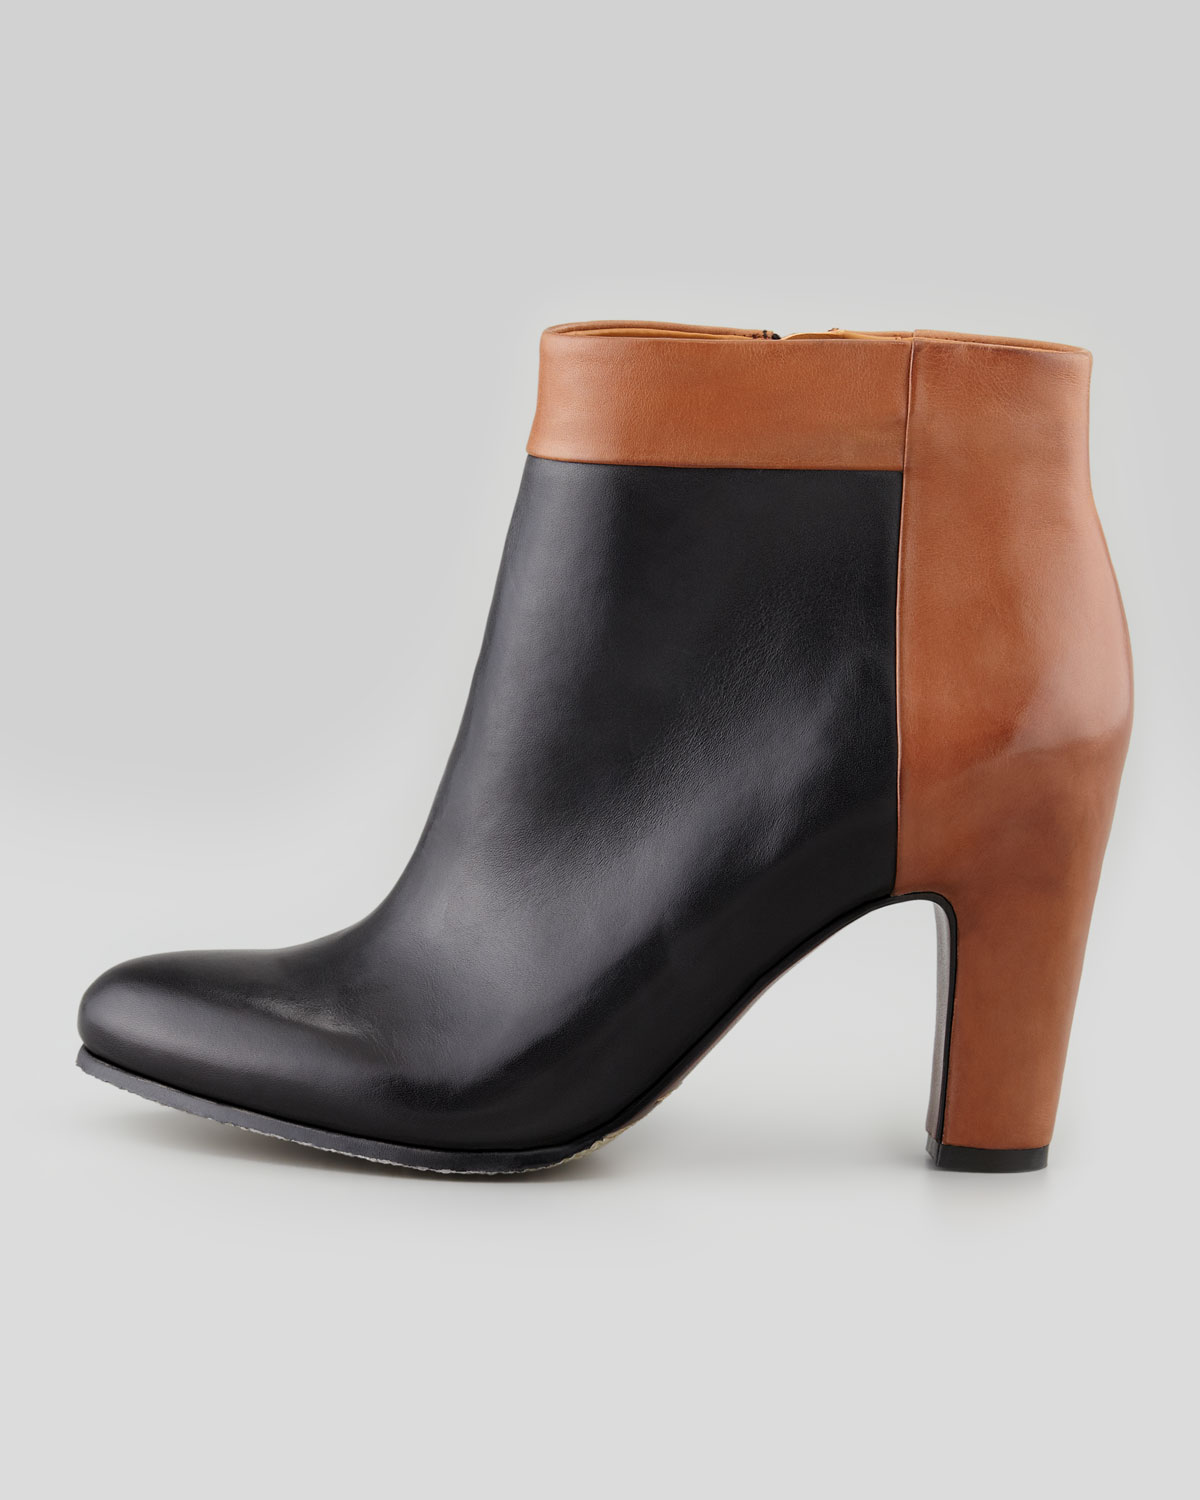 44189d687f68 Lyst - Sam Edelman Shay Twotone Leather Bootie in Brown